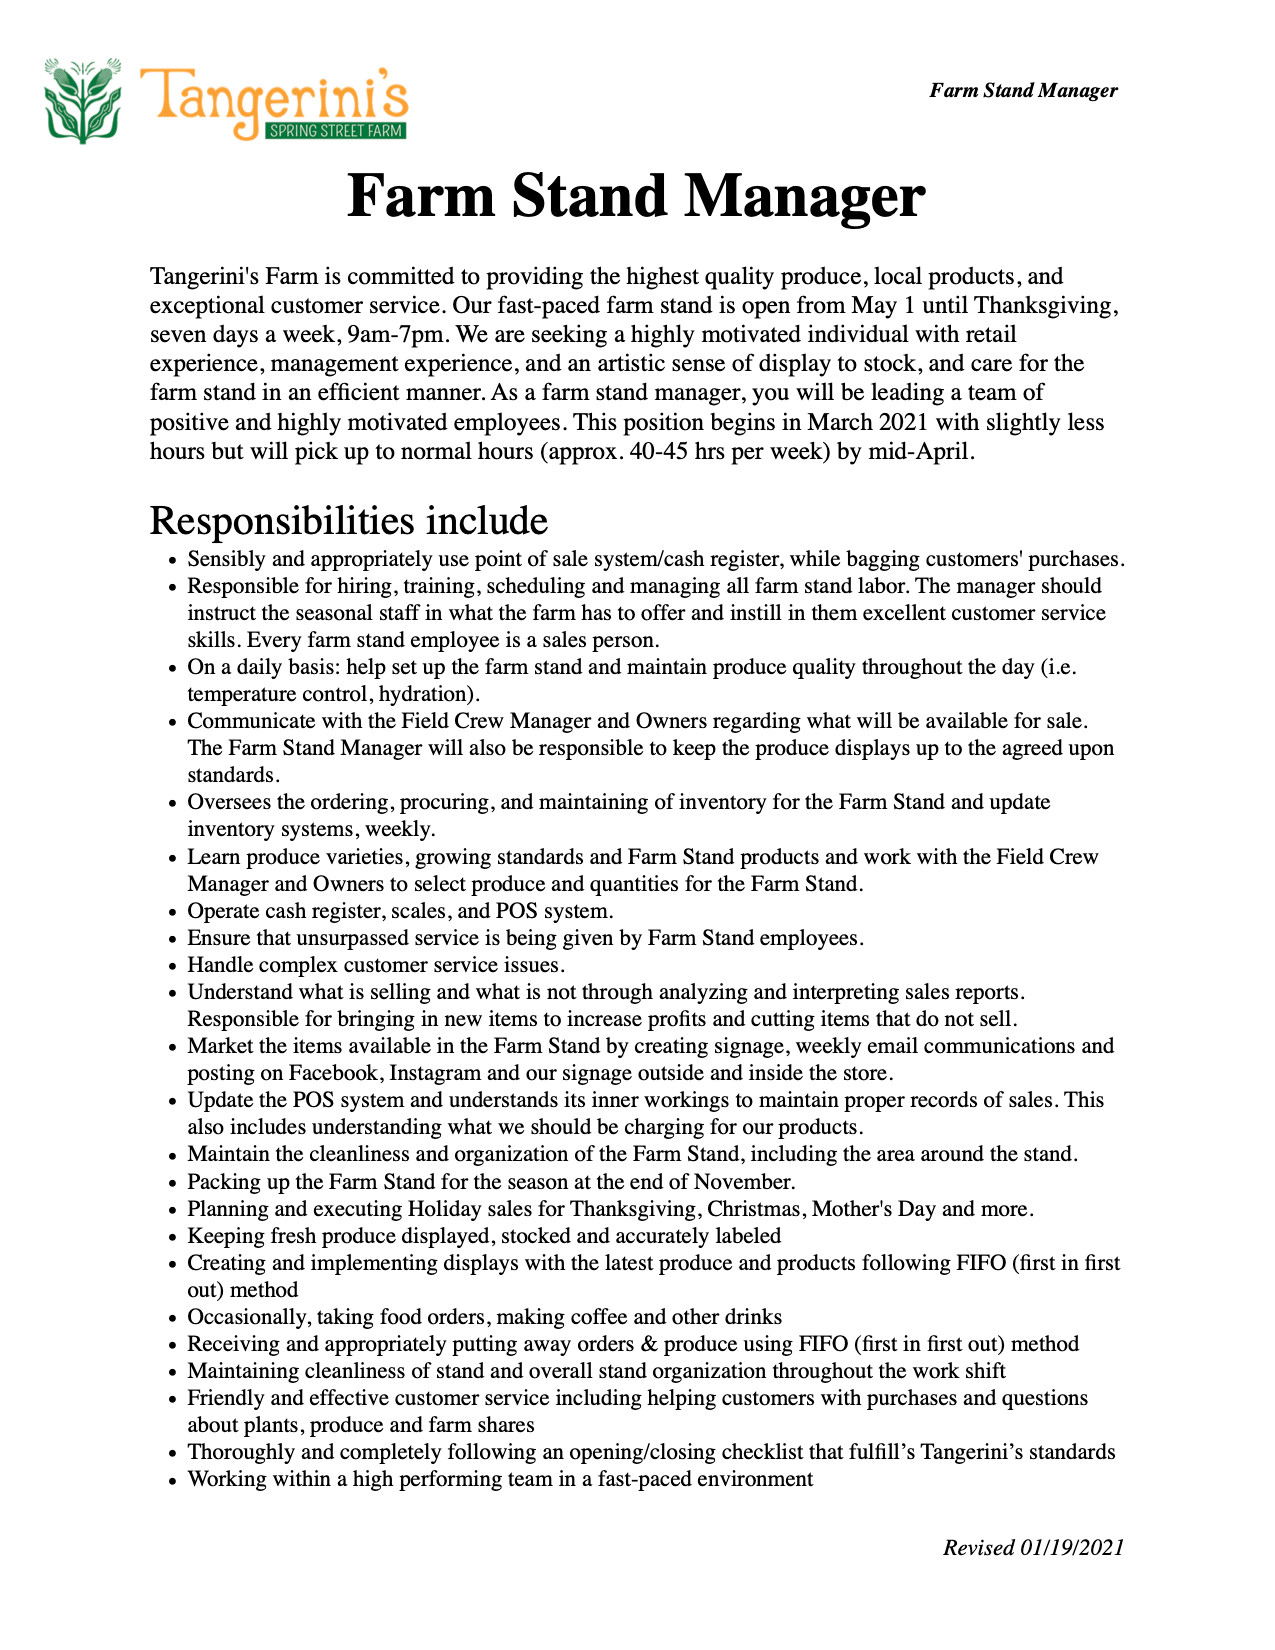 Farm Stand Manager.jpg